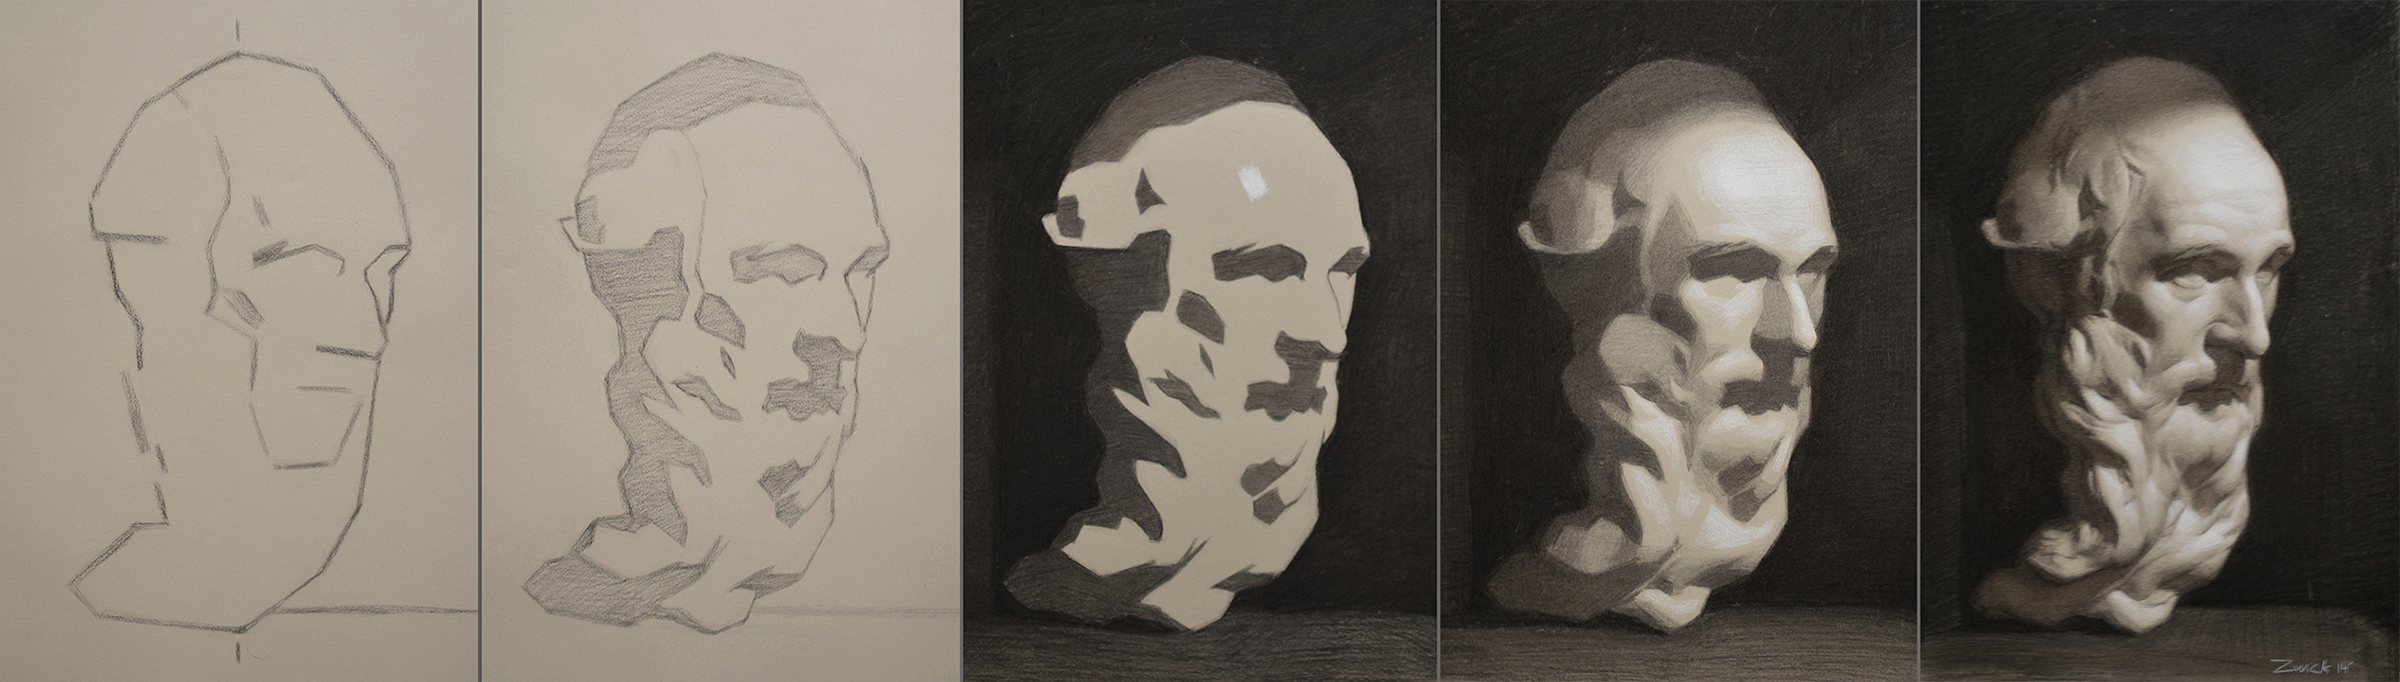 Step by step cast, 2x8%22, Charcoal and white chalk on toned paper, 2015.jpg